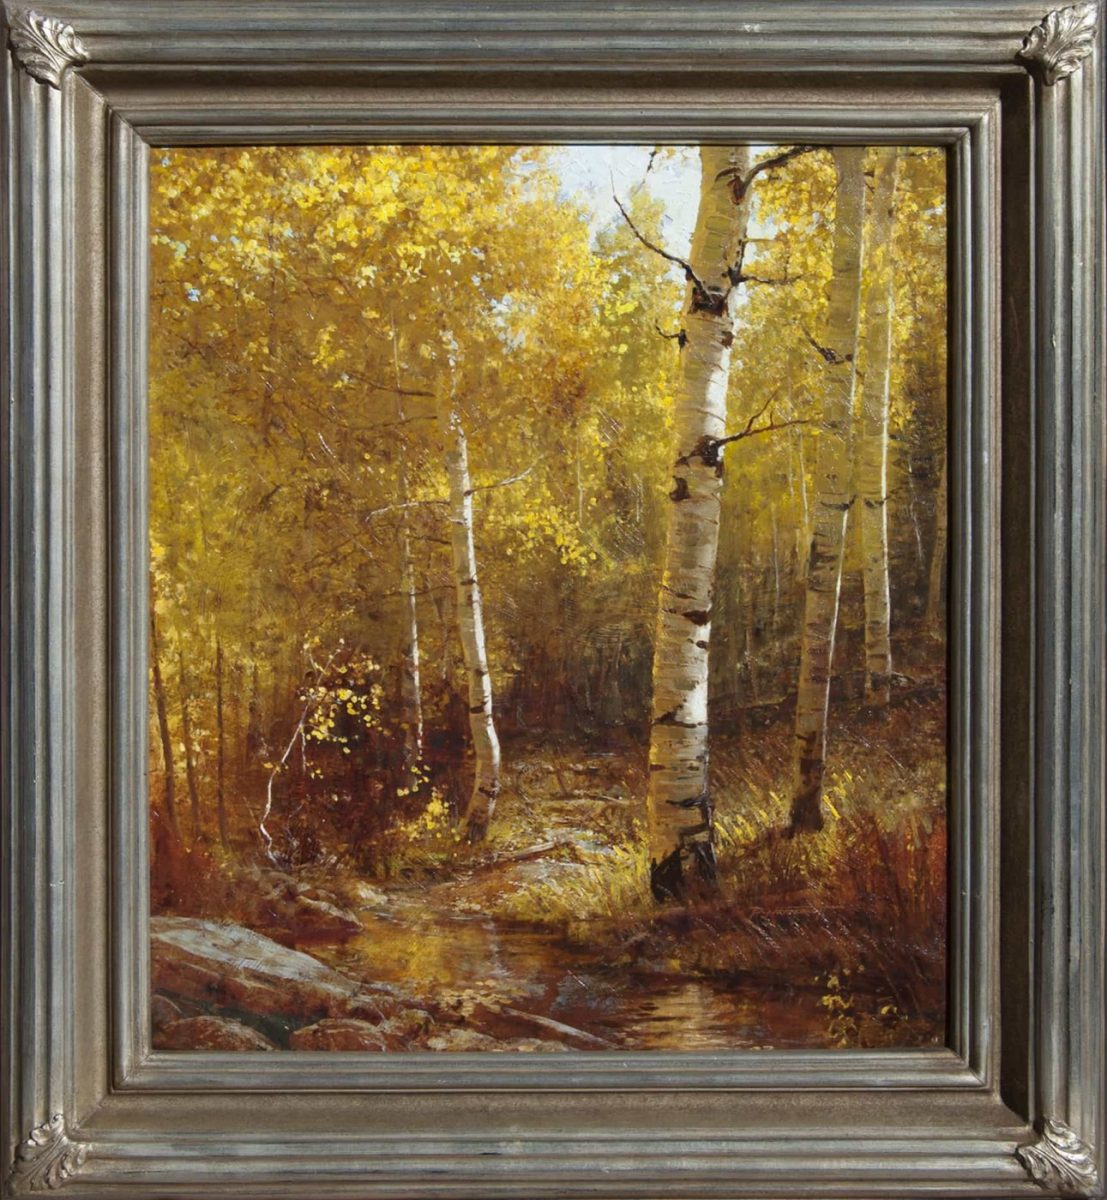 Autumn Aspen Painting by Phill Nethercott